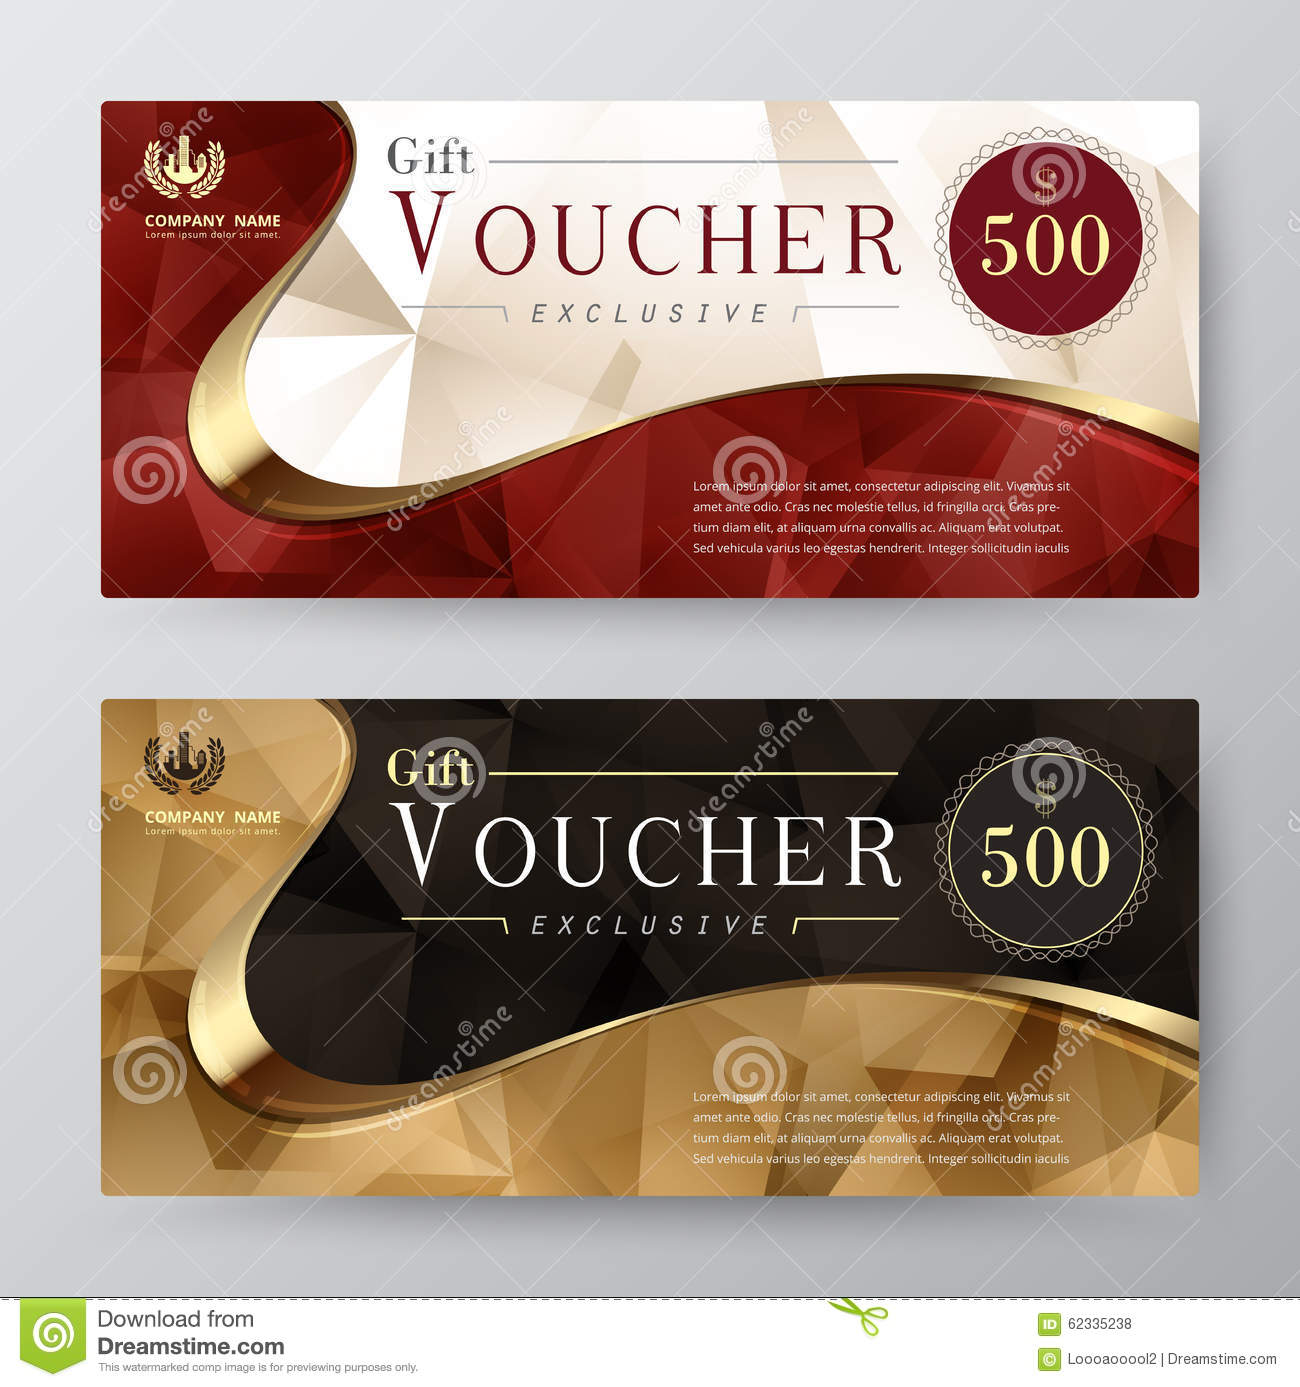 Gift Voucher Template Promotion Card Coupon Design Illustration